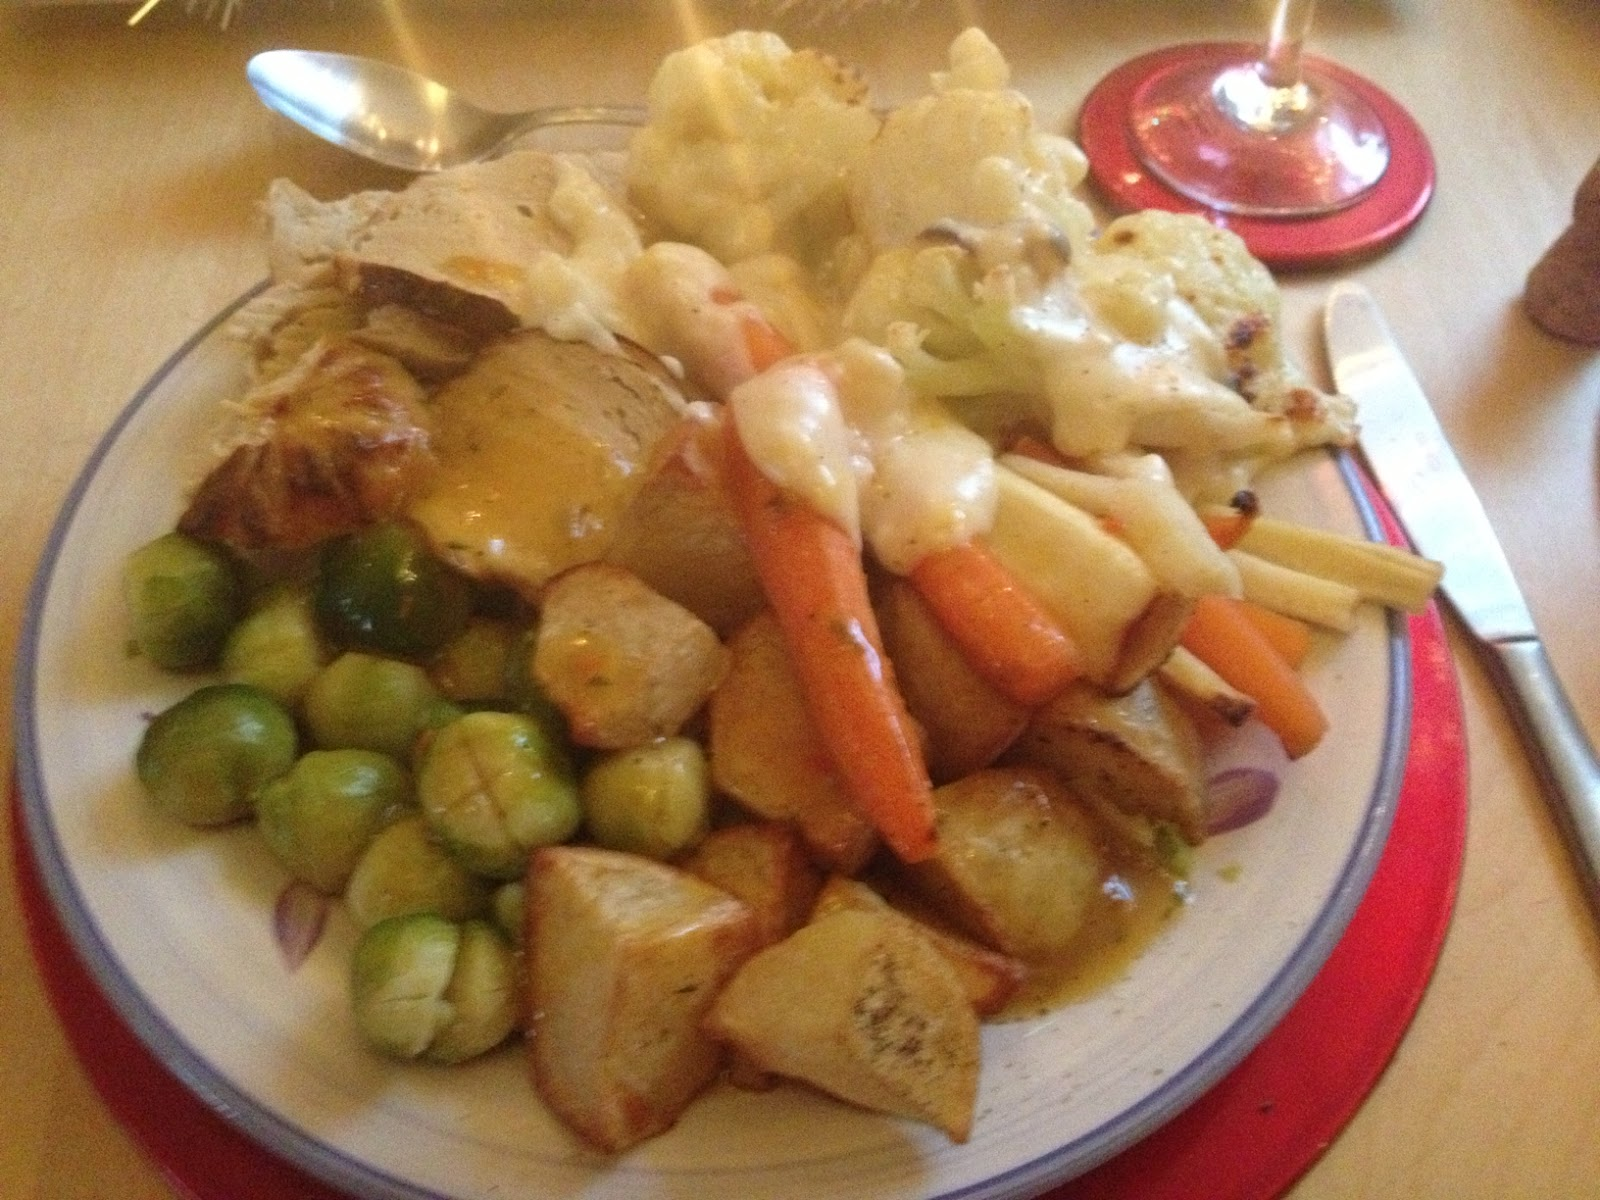 The slimming world files happy christmas Slimming world meal ideas